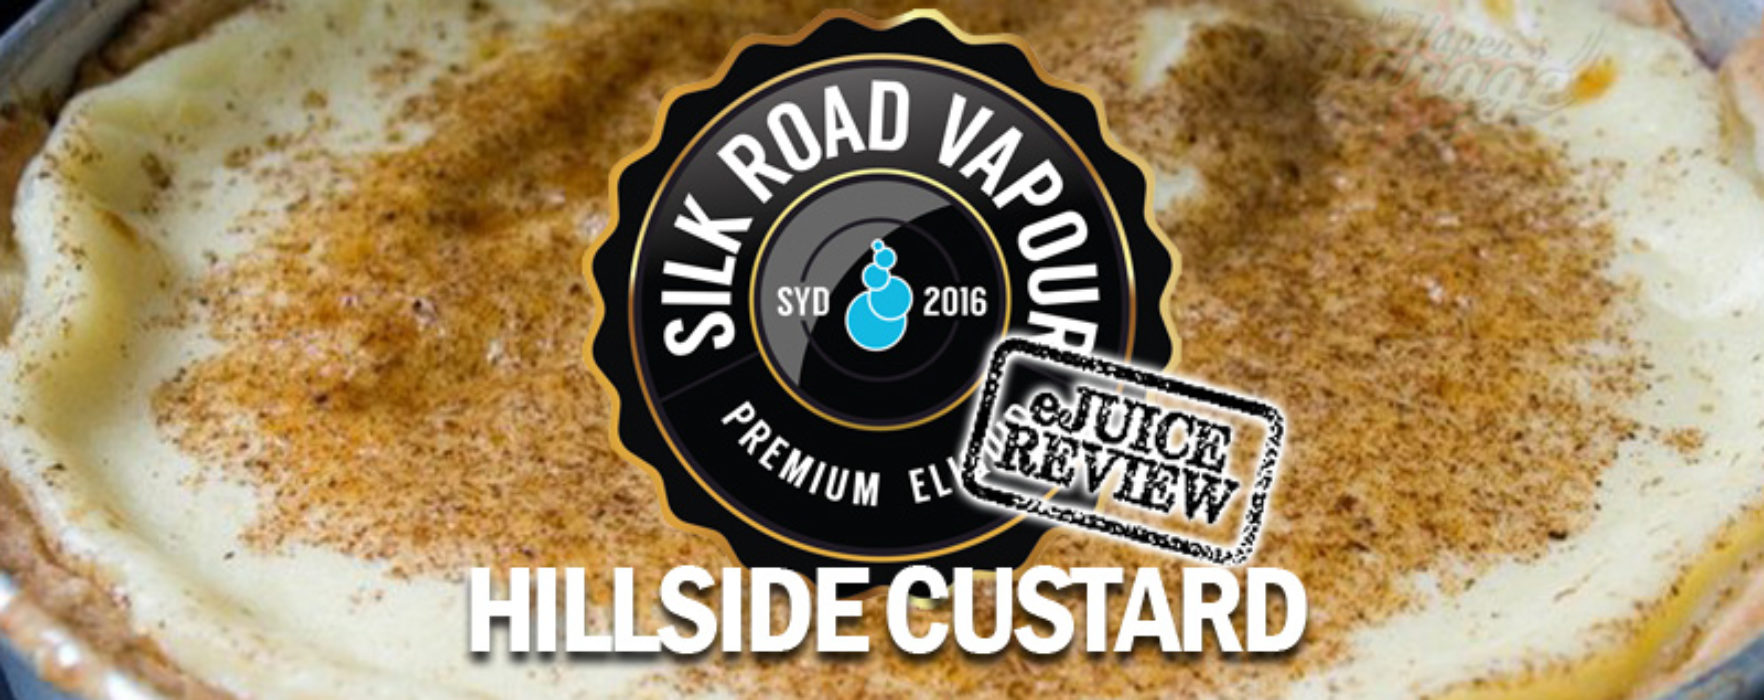 eJuice Review: Hillside Custard by Silk Road Vapour